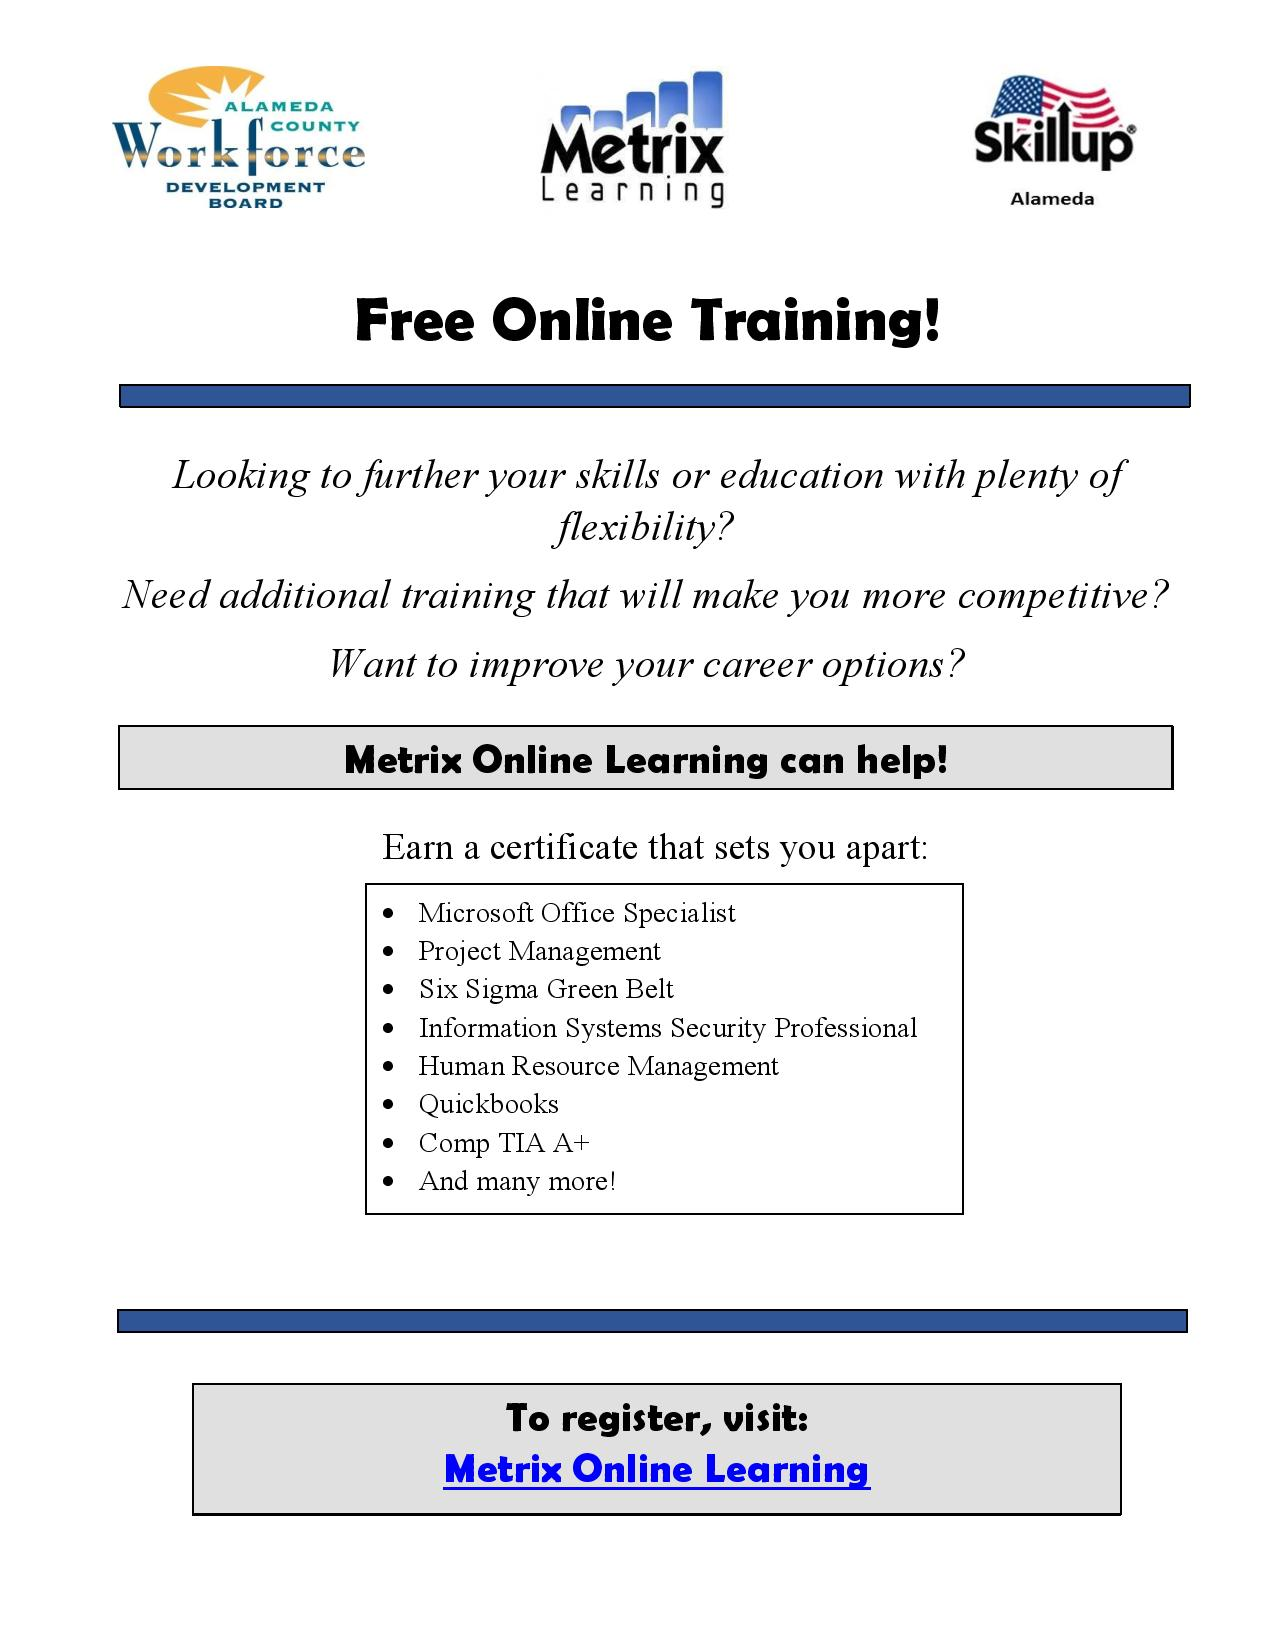 A flyer that promotes Metrix Online Learning, which is a free online training platform to help people gain new skill and occupational certicificates.